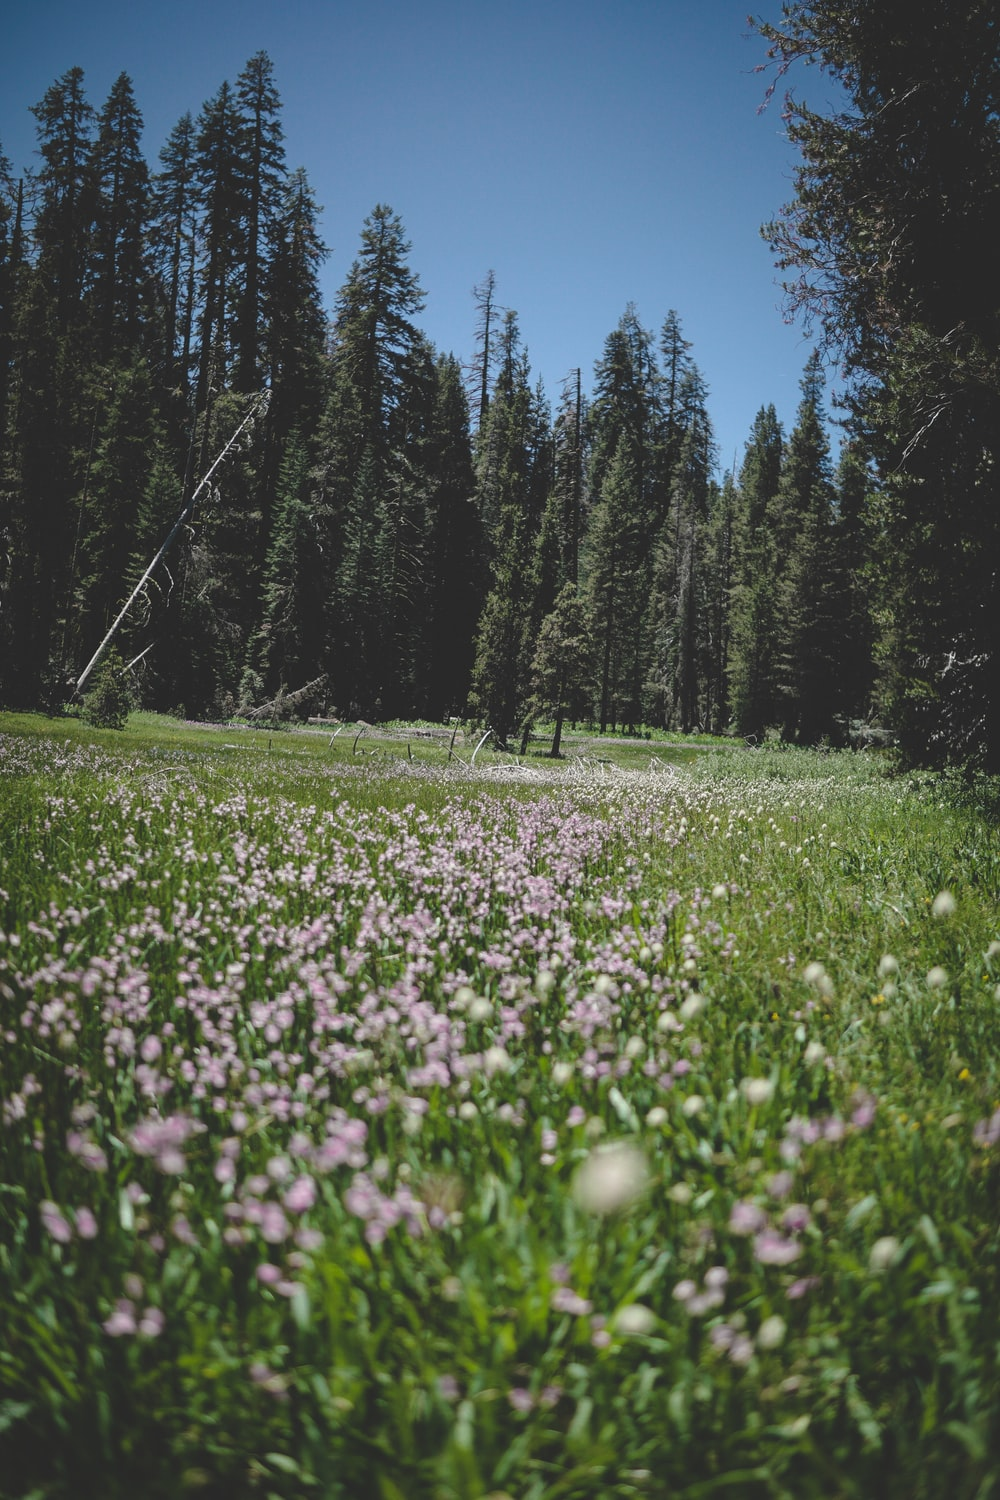 pink flower and pine tree field during daytime